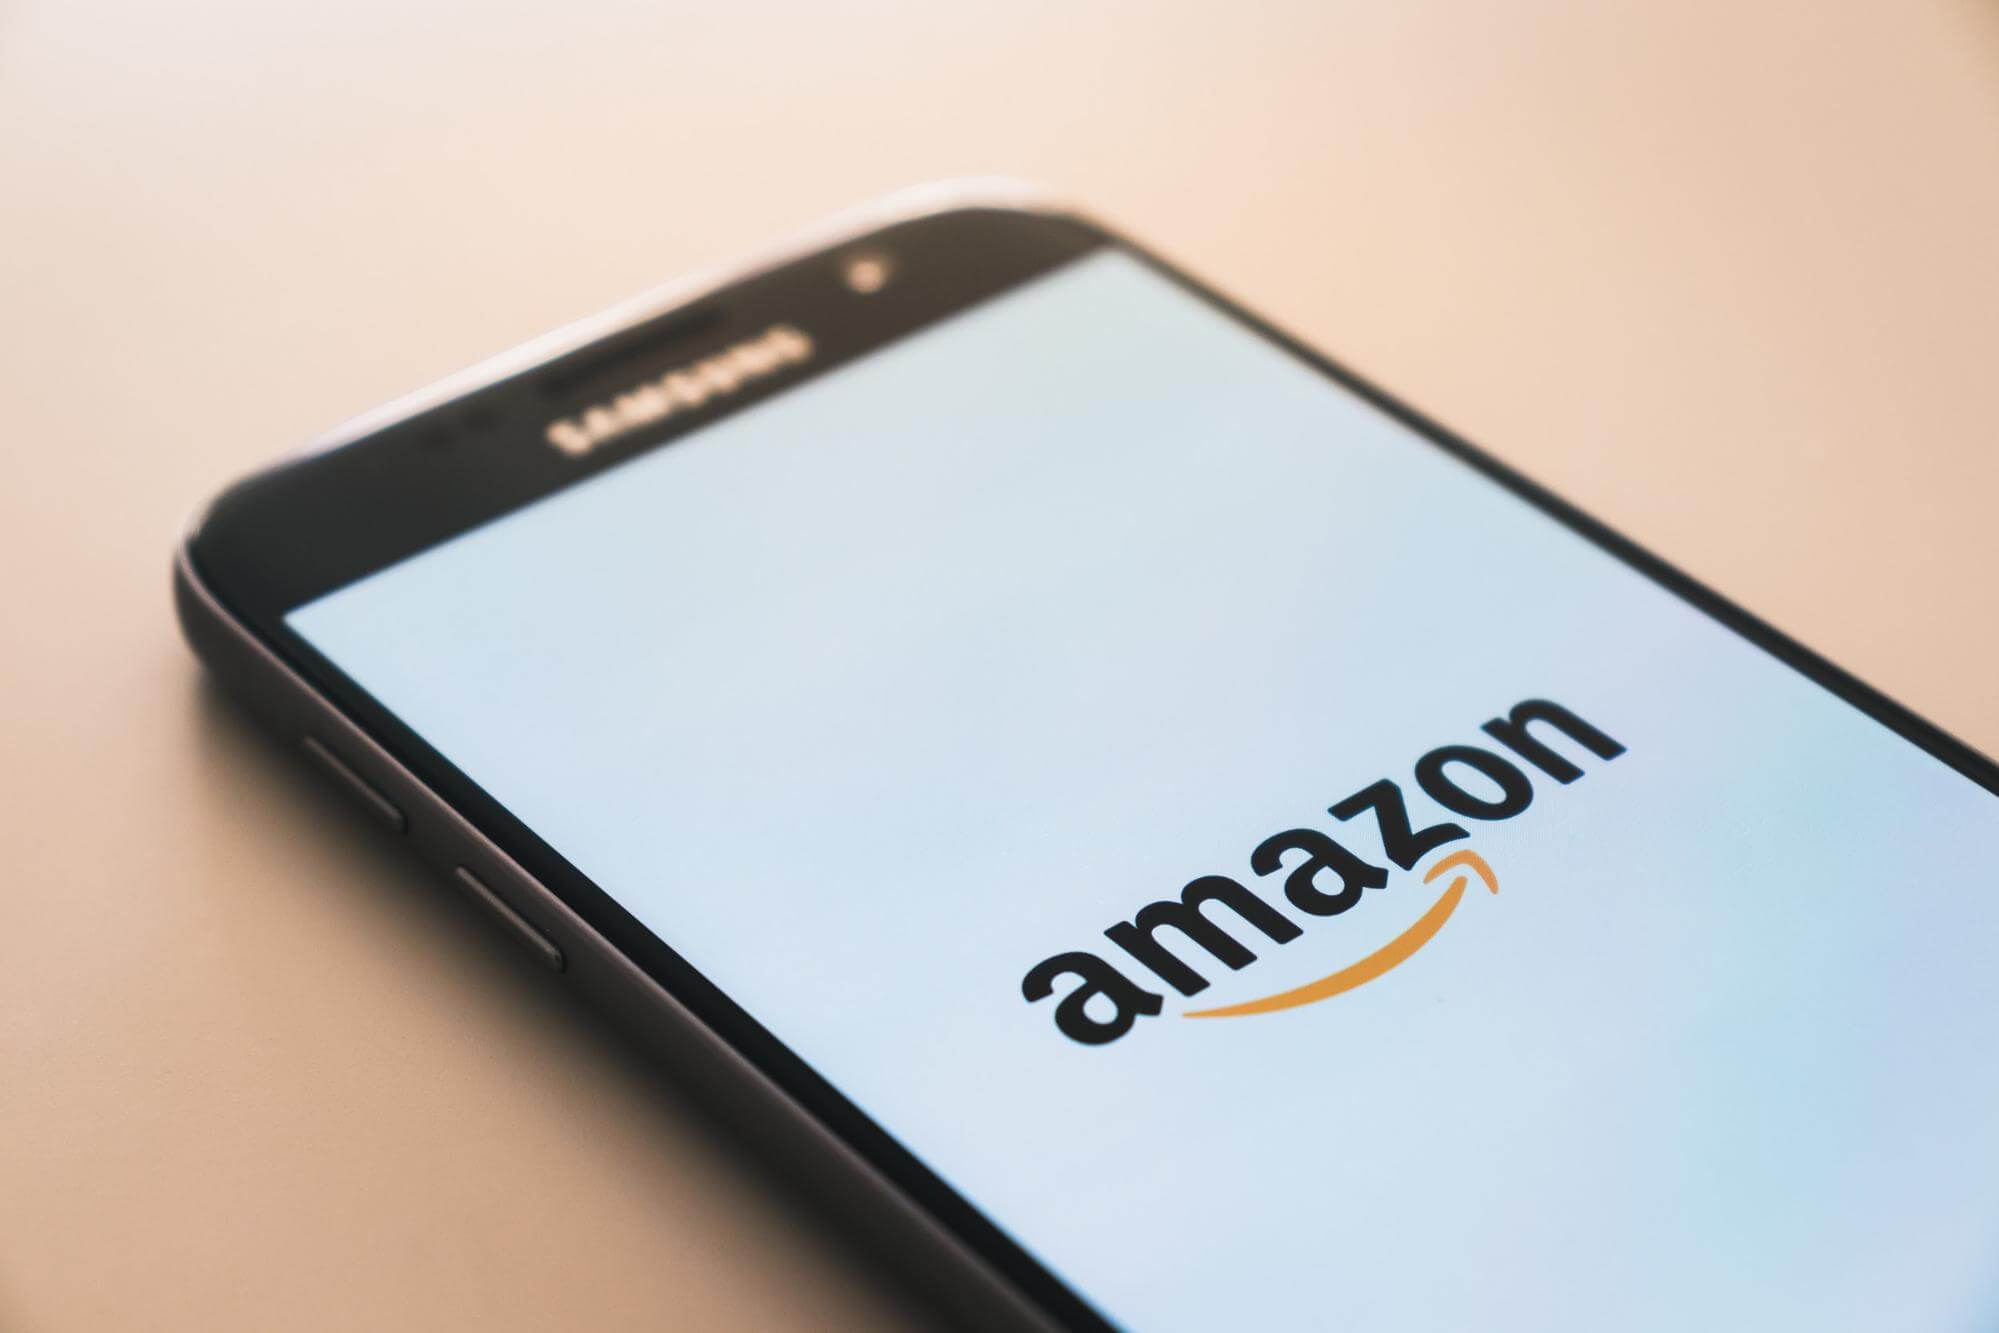 Smartphone avec application Amazon, leader du e-commerce